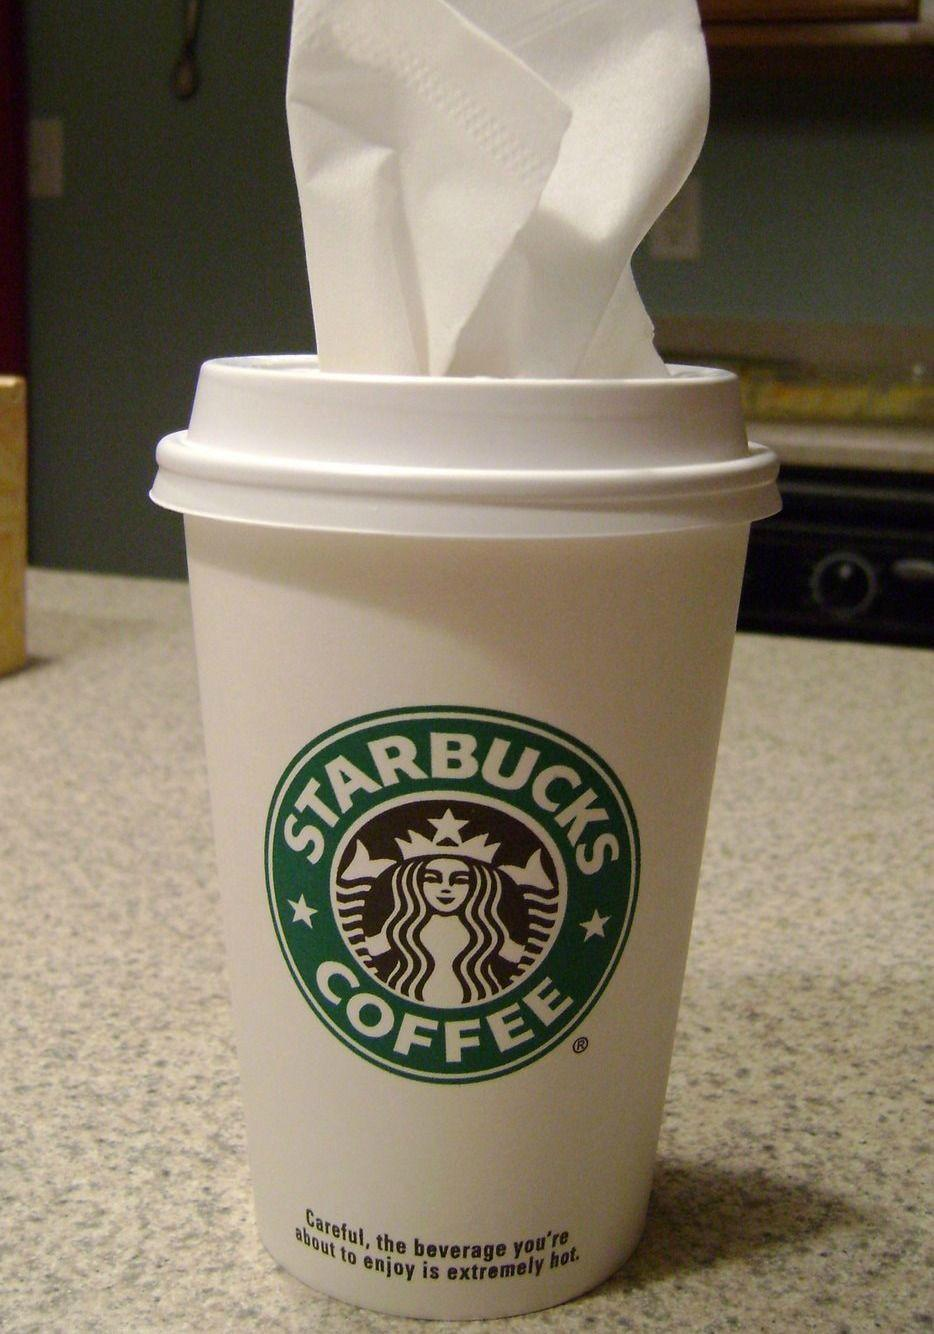 """<p>A to-go coffee cup (an unused one, please) filled with tissues means you can get that cardboard box off the floor for good.</p><p><a href=""""http://www.infarrantlycreative.net/project-8-two-mini-projects/"""" rel=""""nofollow noopener"""" target=""""_blank"""" data-ylk=""""slk:See more at Infarrantly Creative »"""" class=""""link rapid-noclick-resp""""><em>See more at Infarrantly Creative »</em></a></p>"""